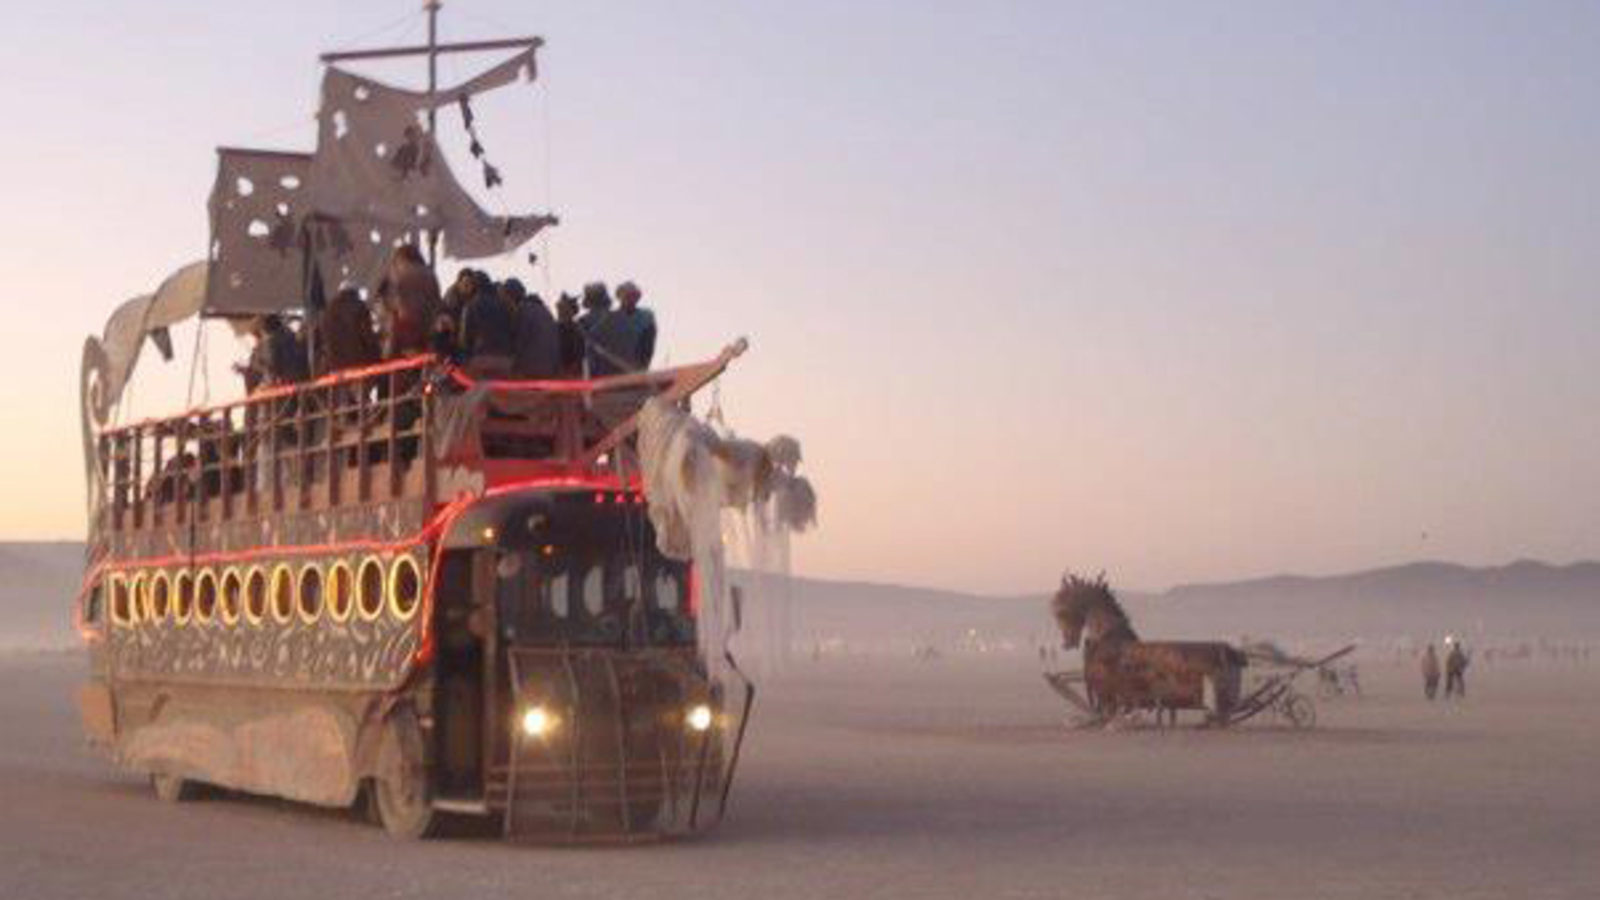 Image: Dodobus at Burning Man